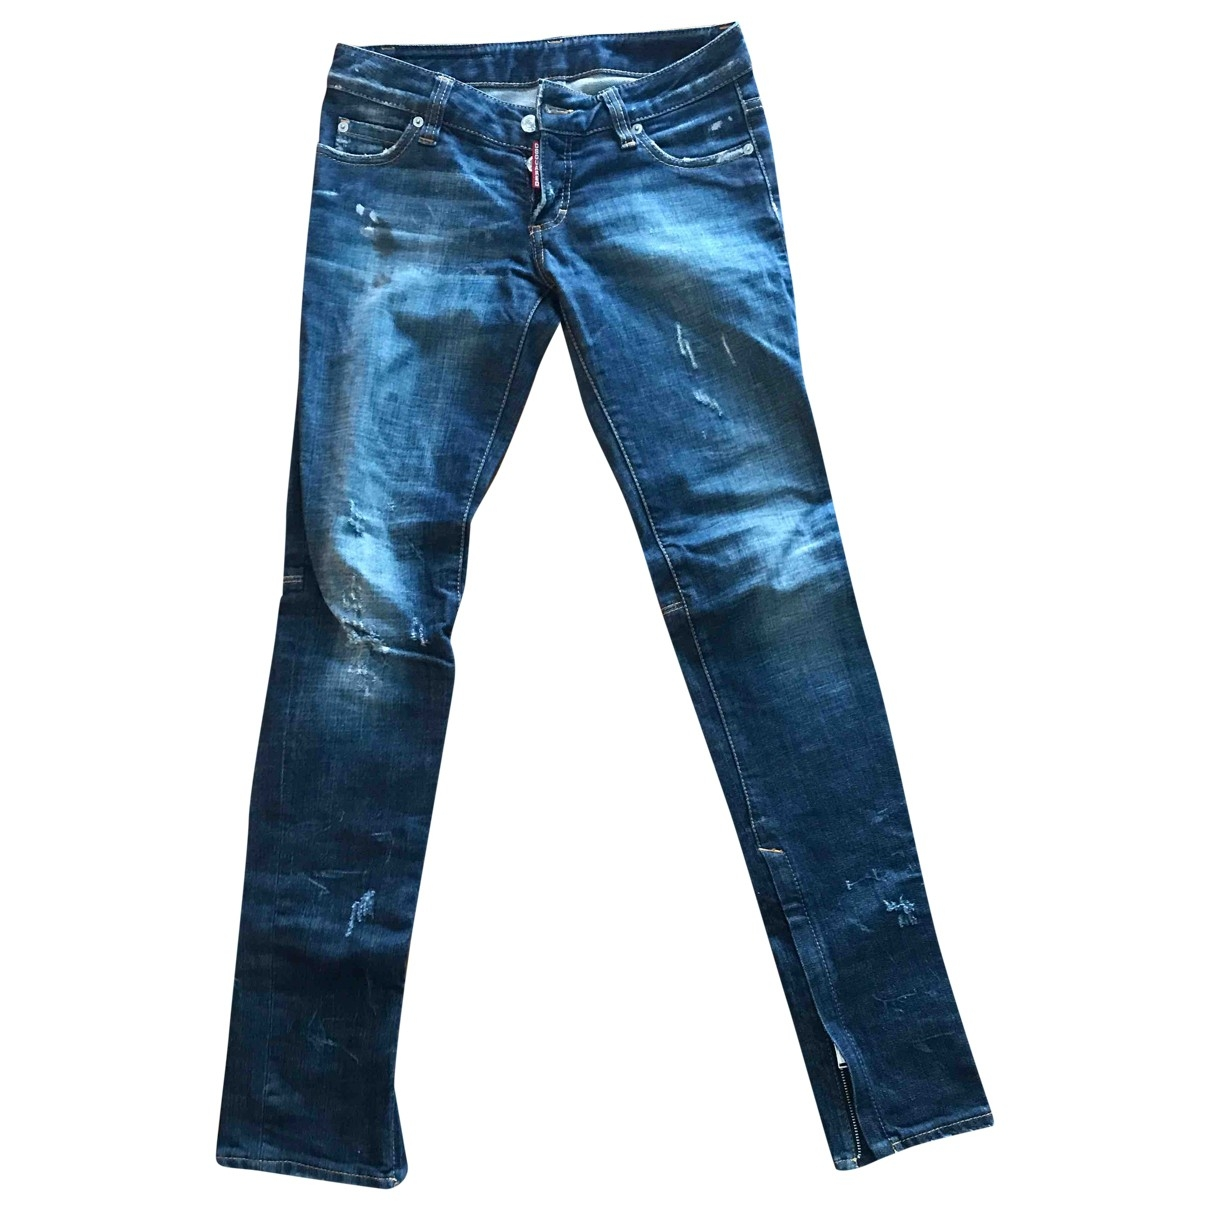 Dsquared2 \N Blue Denim - Jeans Jeans for Women 38 FR